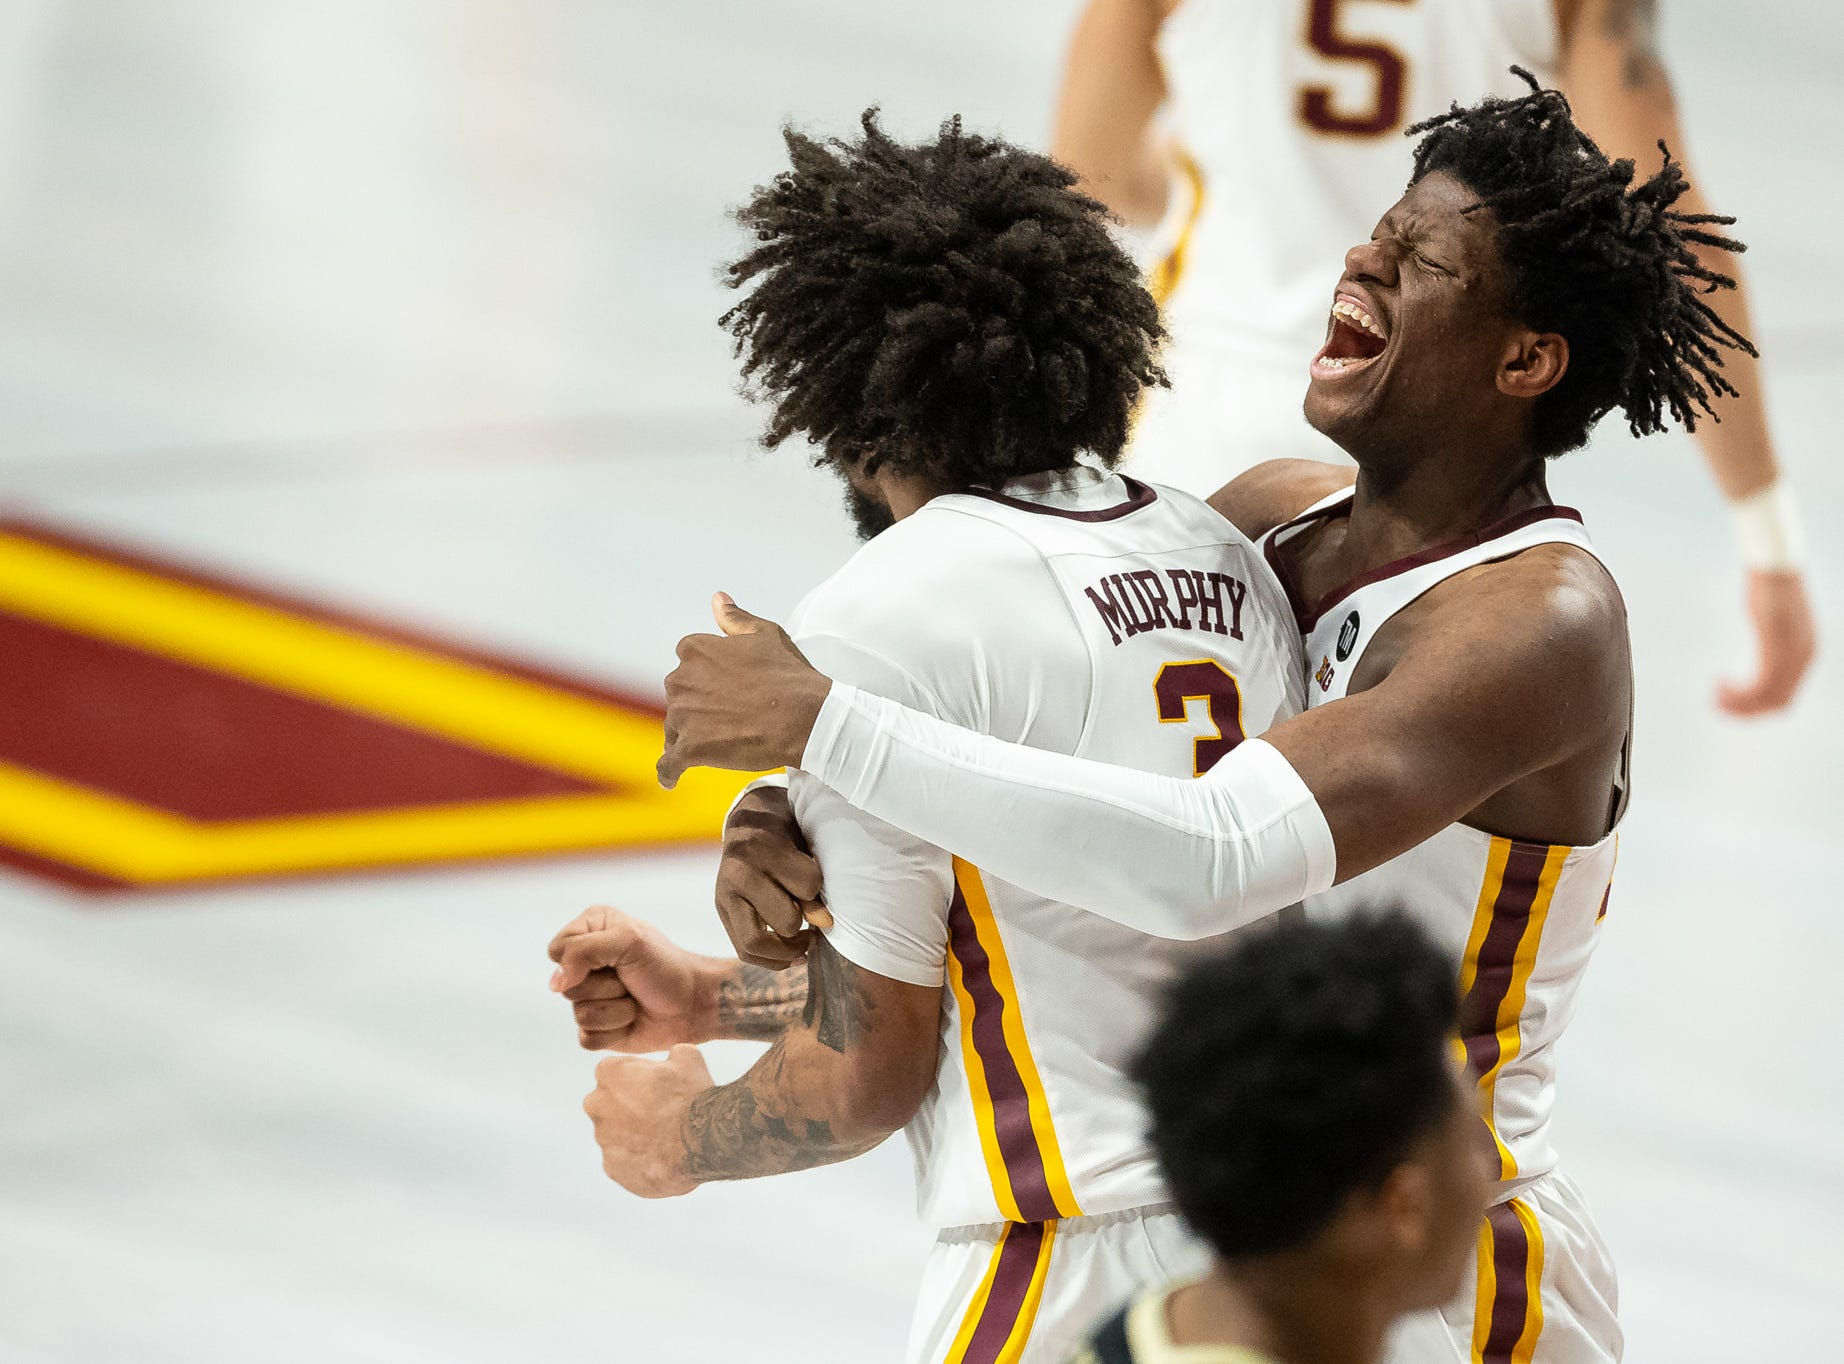 Mar 5, 2019; Minneapolis, MN, USA; Minnesota Gophers center Daniel Oturu (25) and forward Jordan Murphy (3) react after a play during the first half against the Purdue Boilermakers at Williams Arena. Mandatory Credit: Harrison Barden-USA TODAY Sports